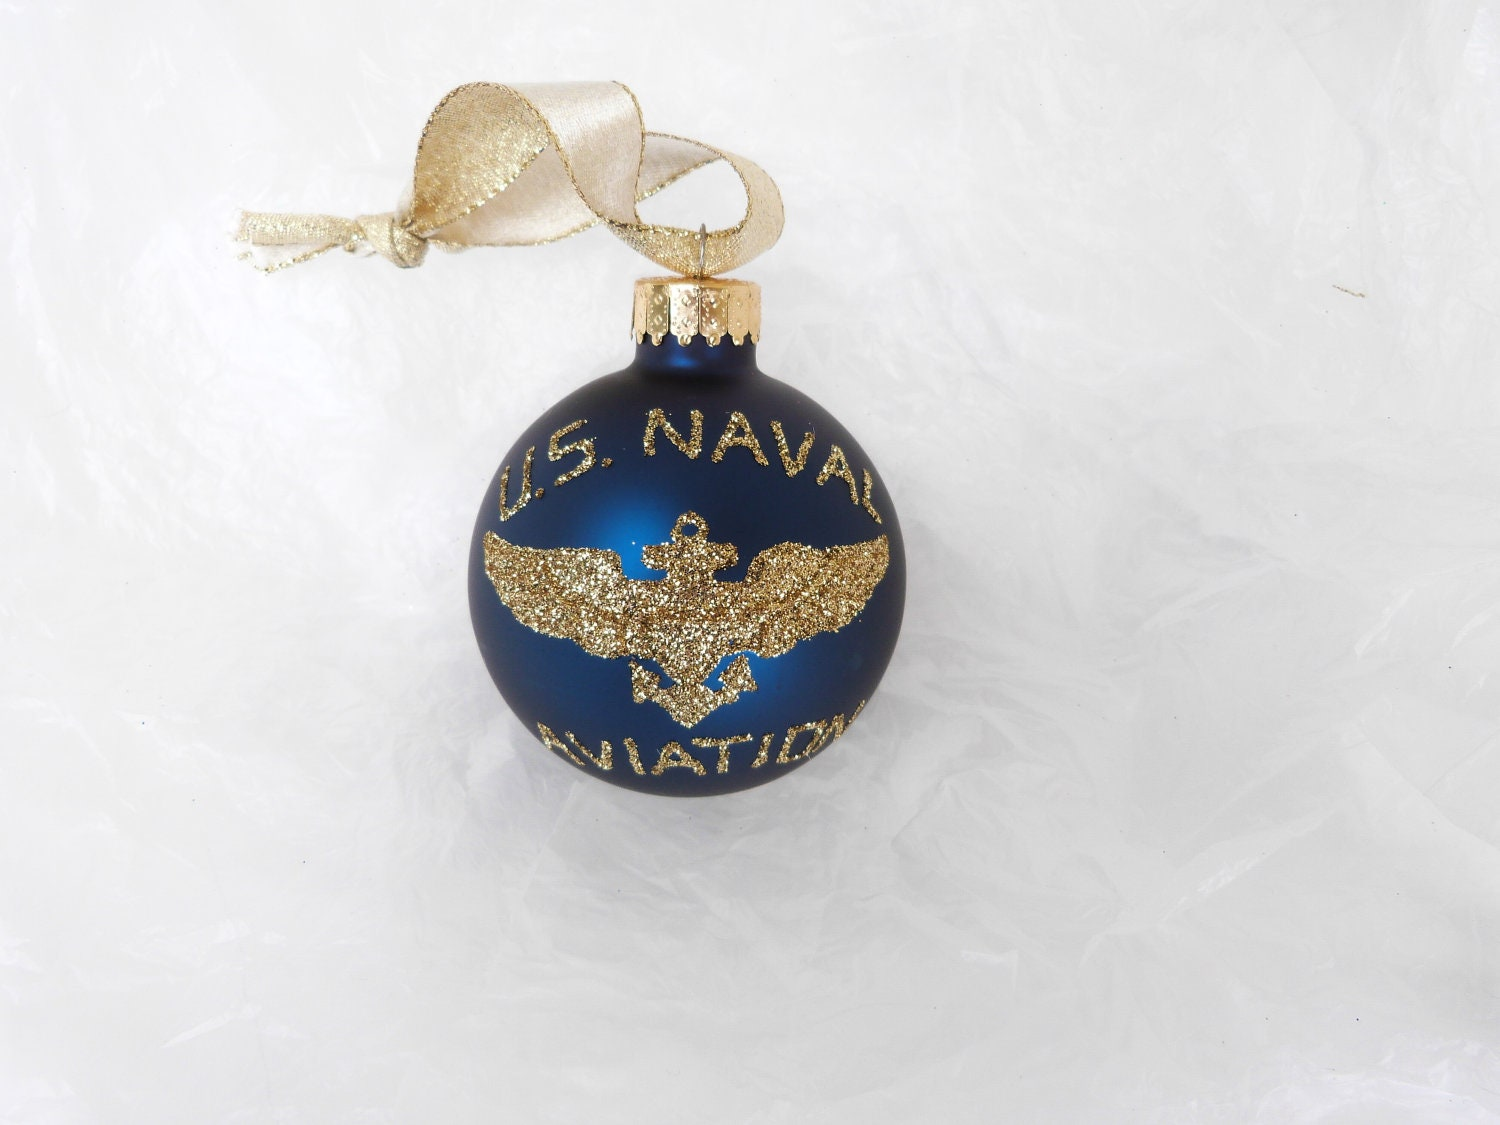 Personalized US Naval Aviation Glass Ball Ornament - US Navy Pilot and Flight Wings Military Ornament - GlitterOrnaments